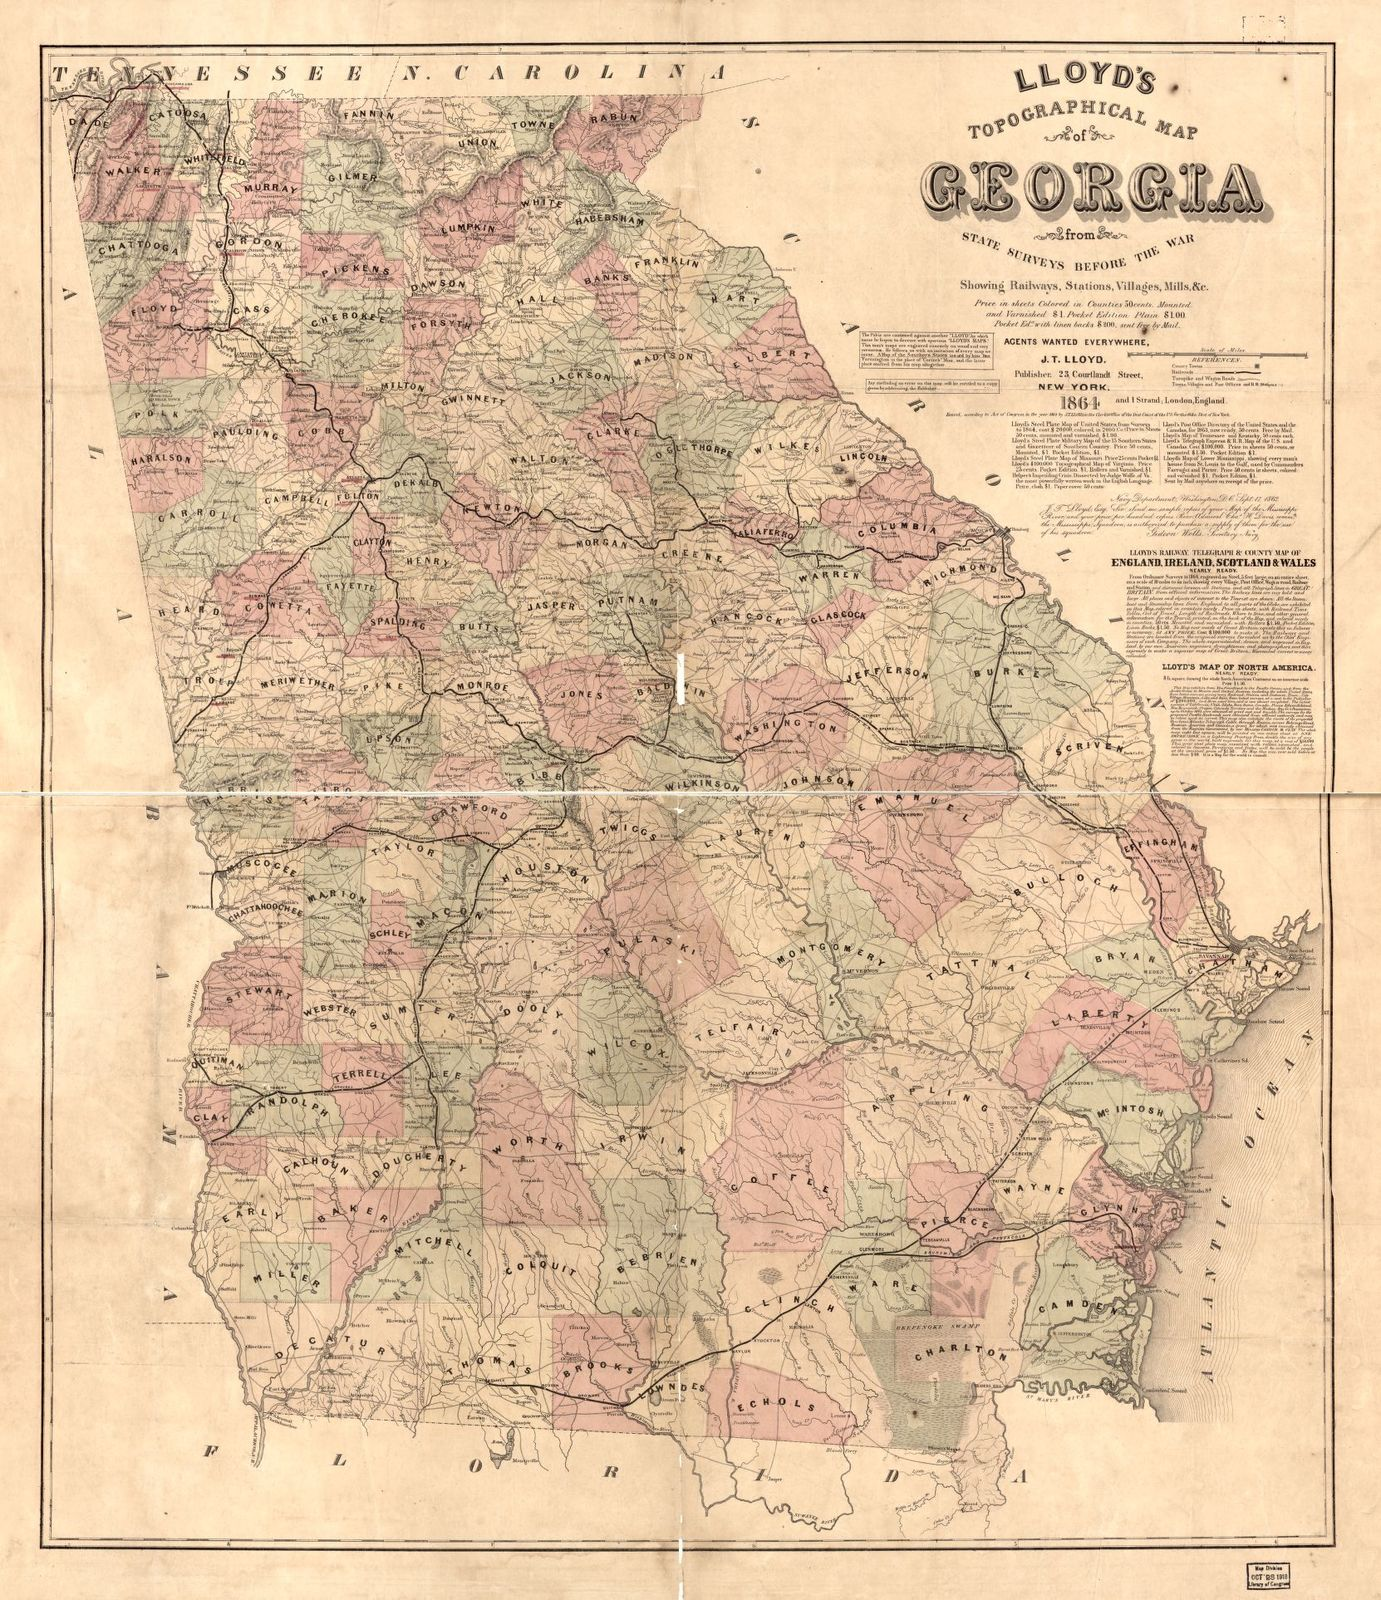 Lloyd's Topographical map of Georgia from state surveys before the war showing railways, stations, villages, mills, &c. /